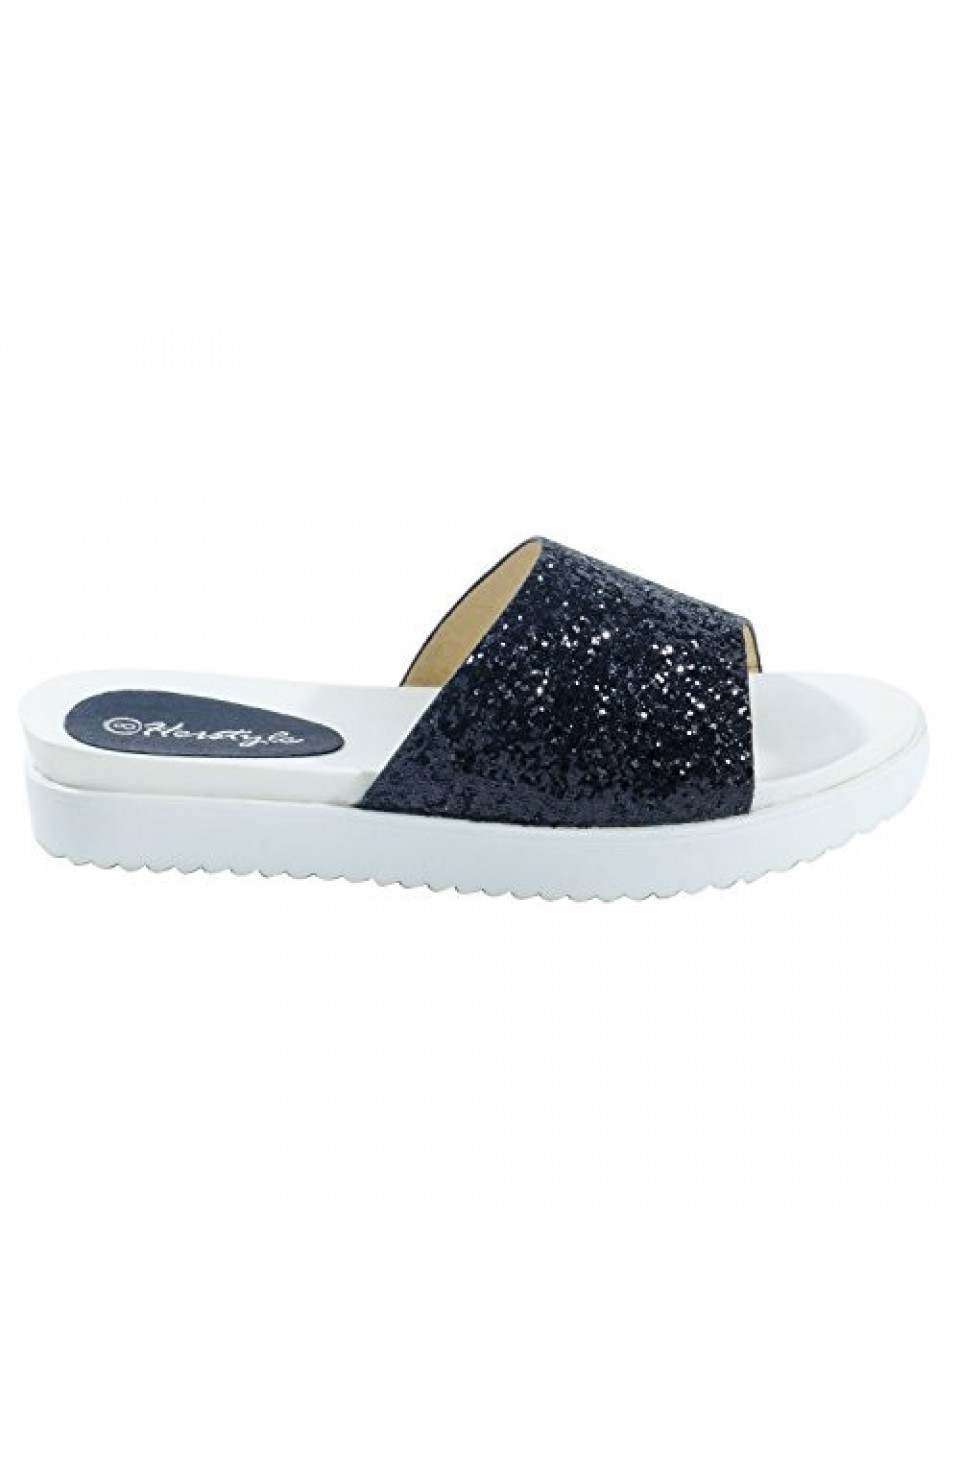 Women's Black Manmade Shearly Low Wedge Sandal with Glitzy Upper